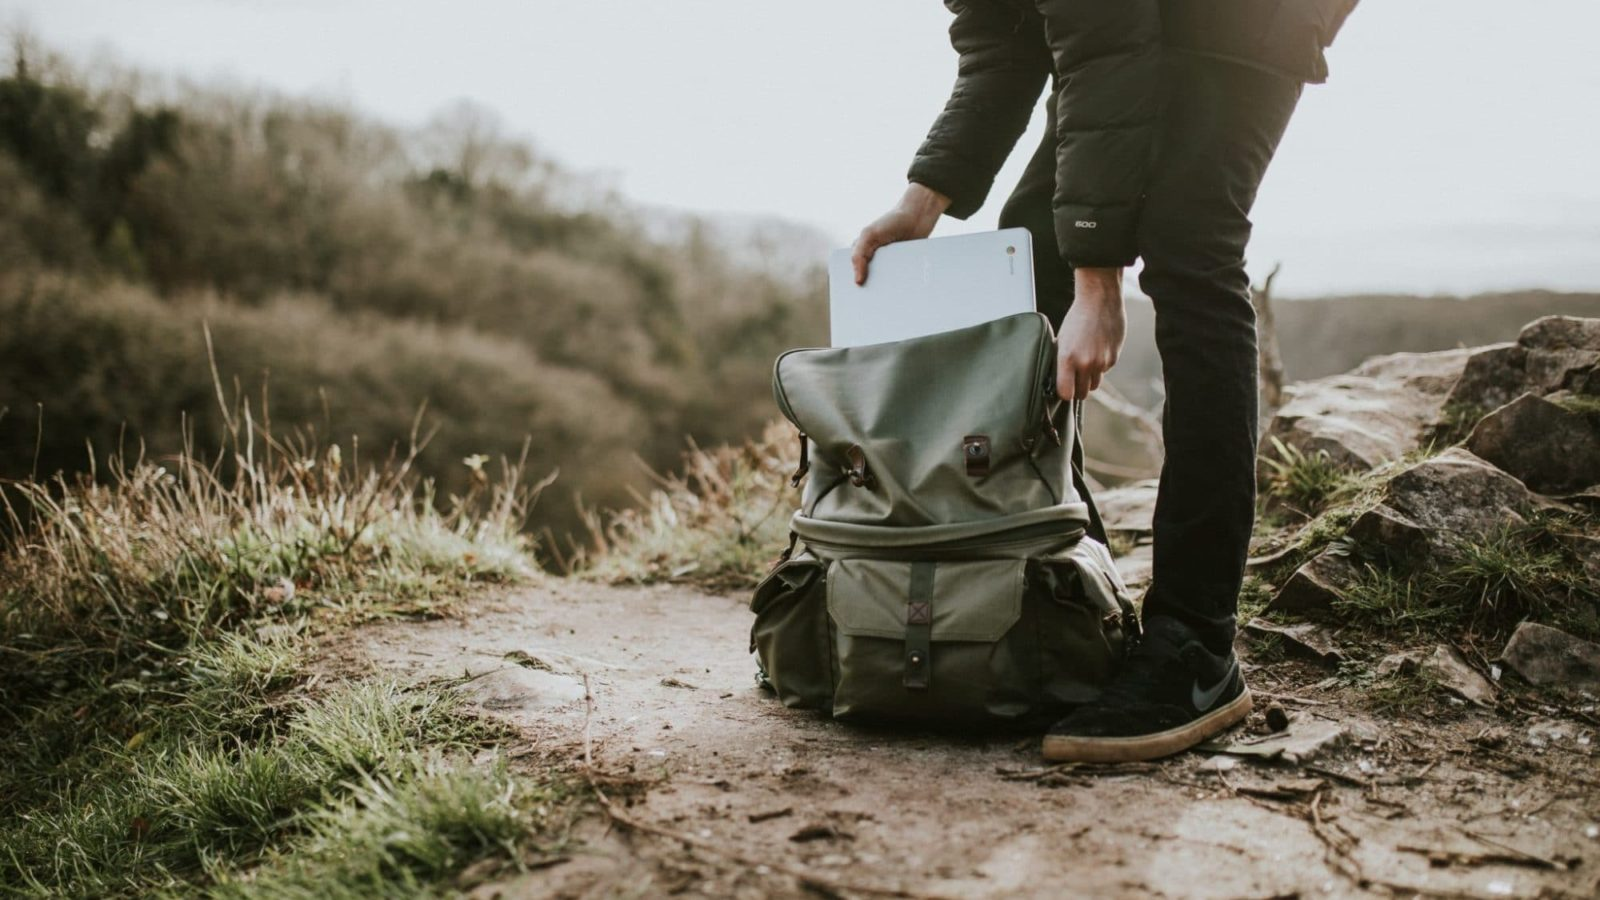 image of person hiking with laptop